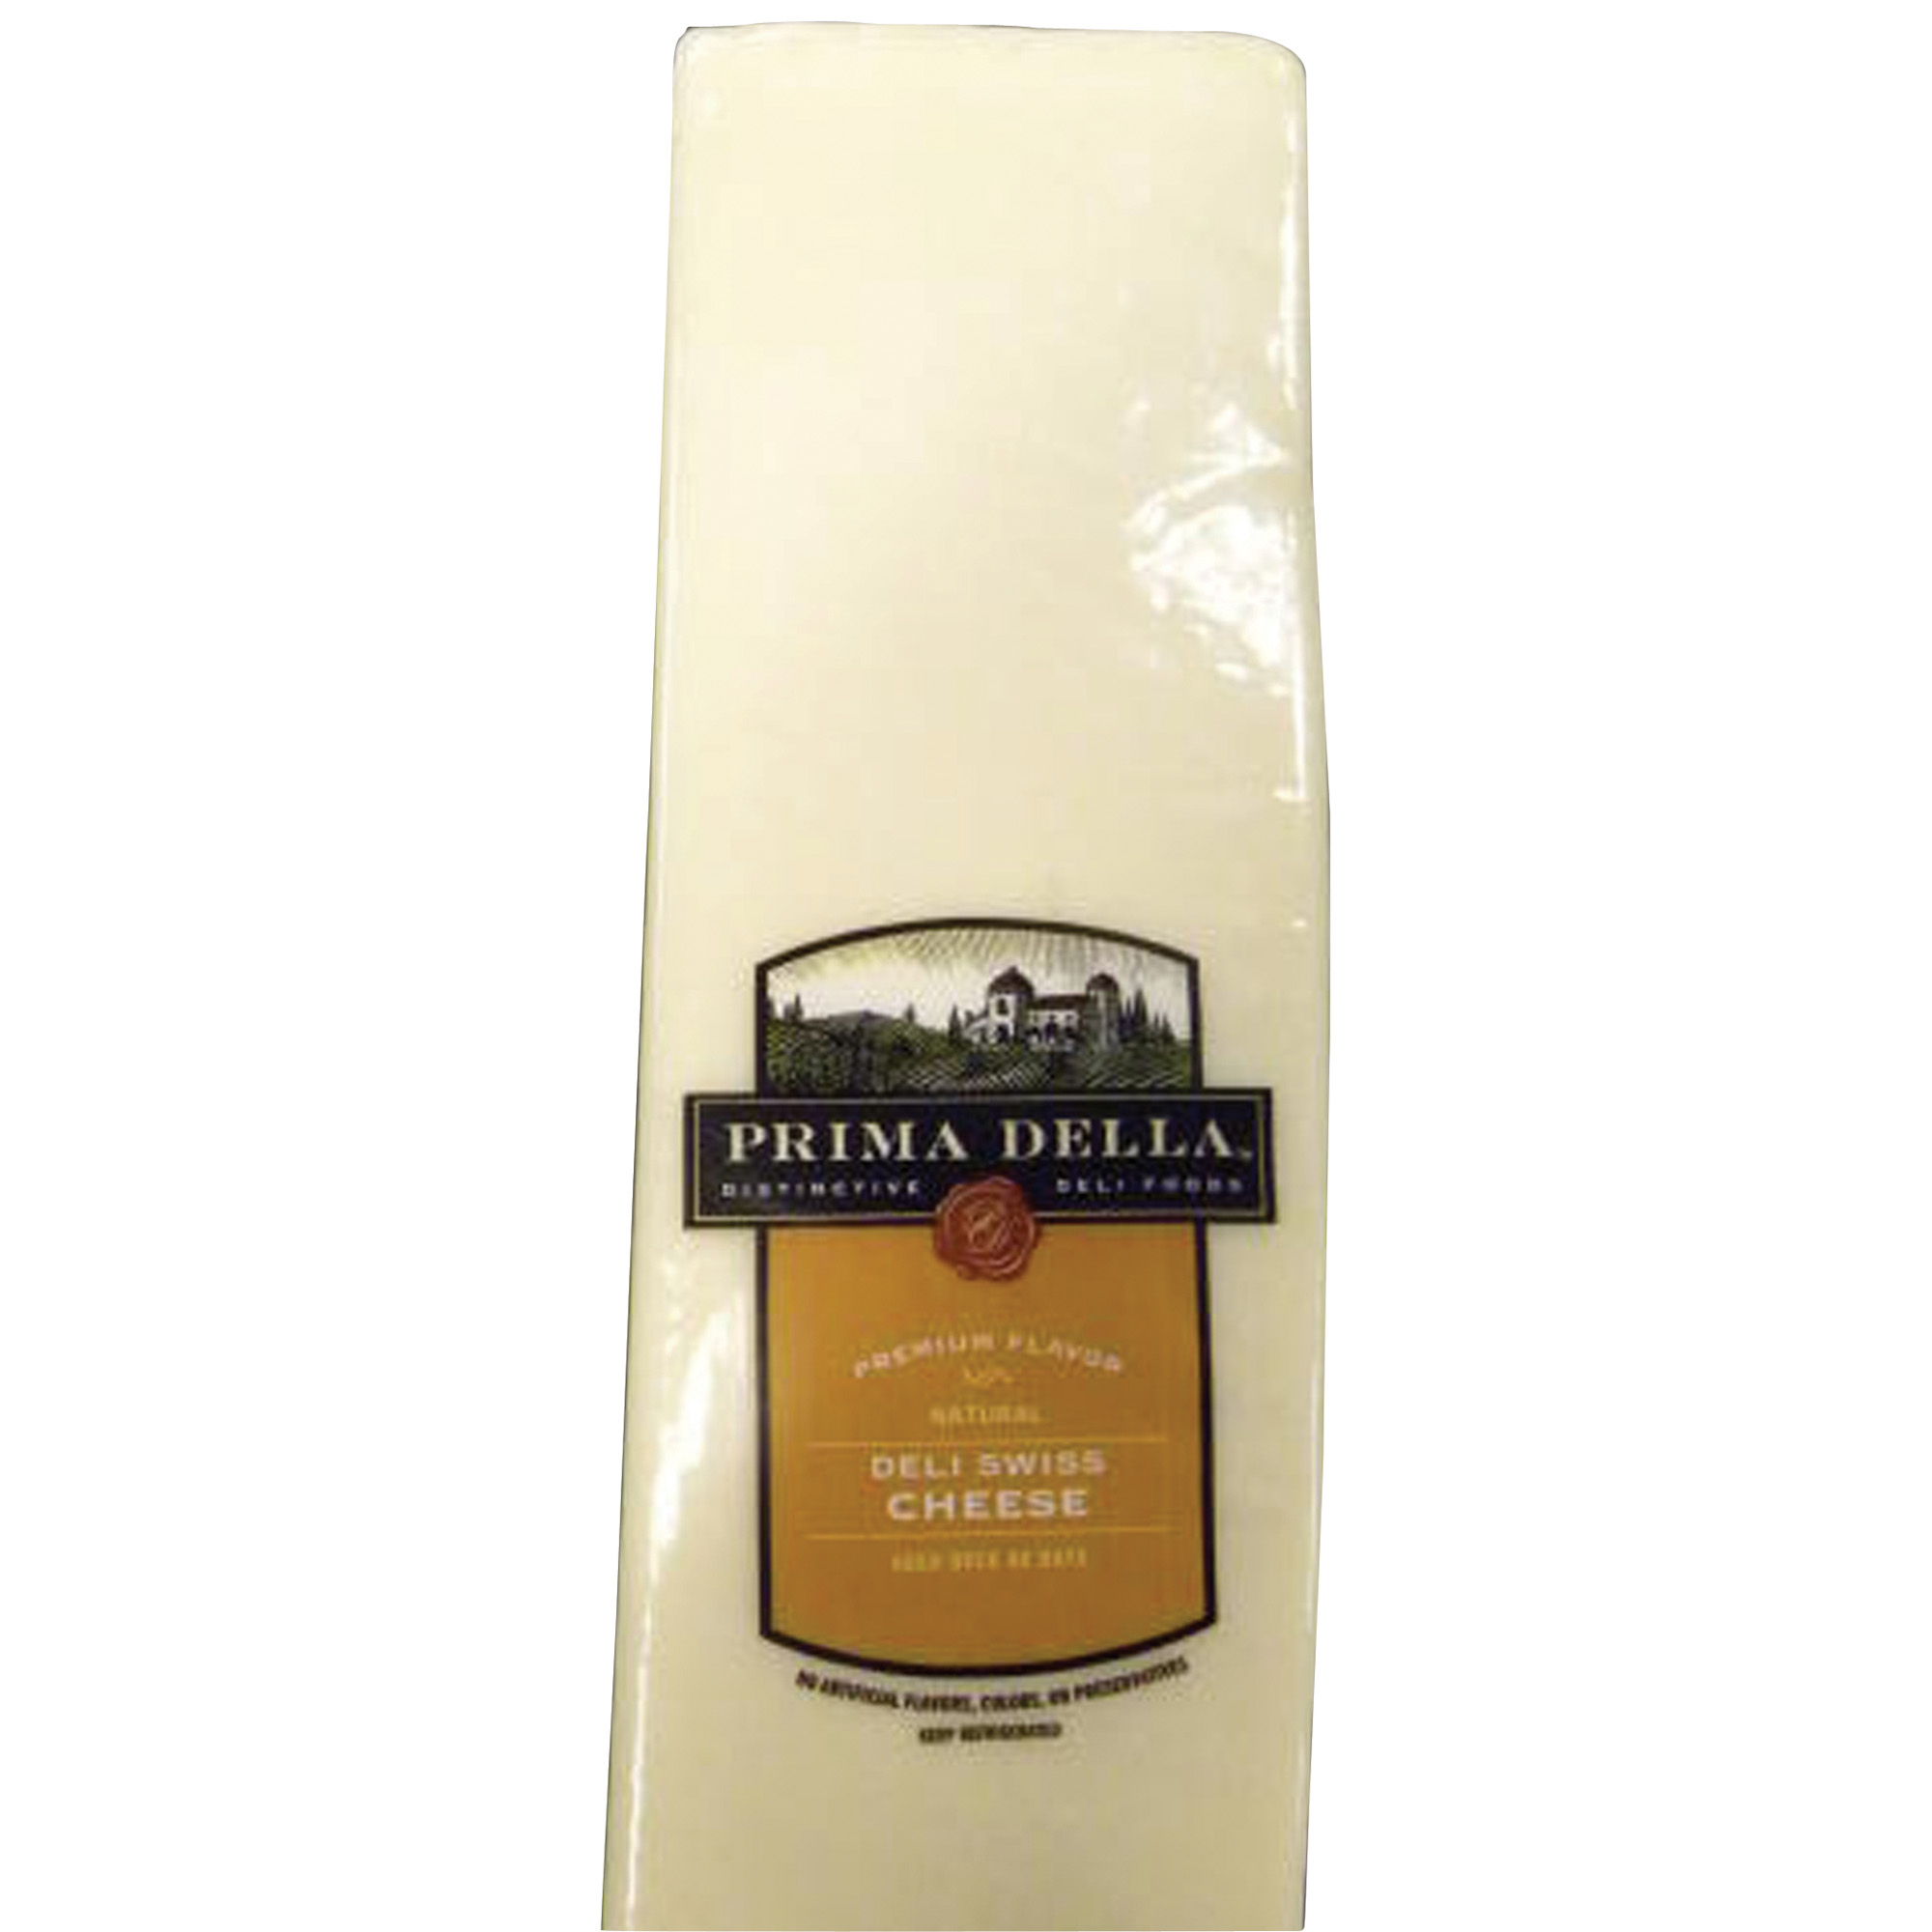 Prima Della Deli Swiss Cheese Deli Sliced 1 lb